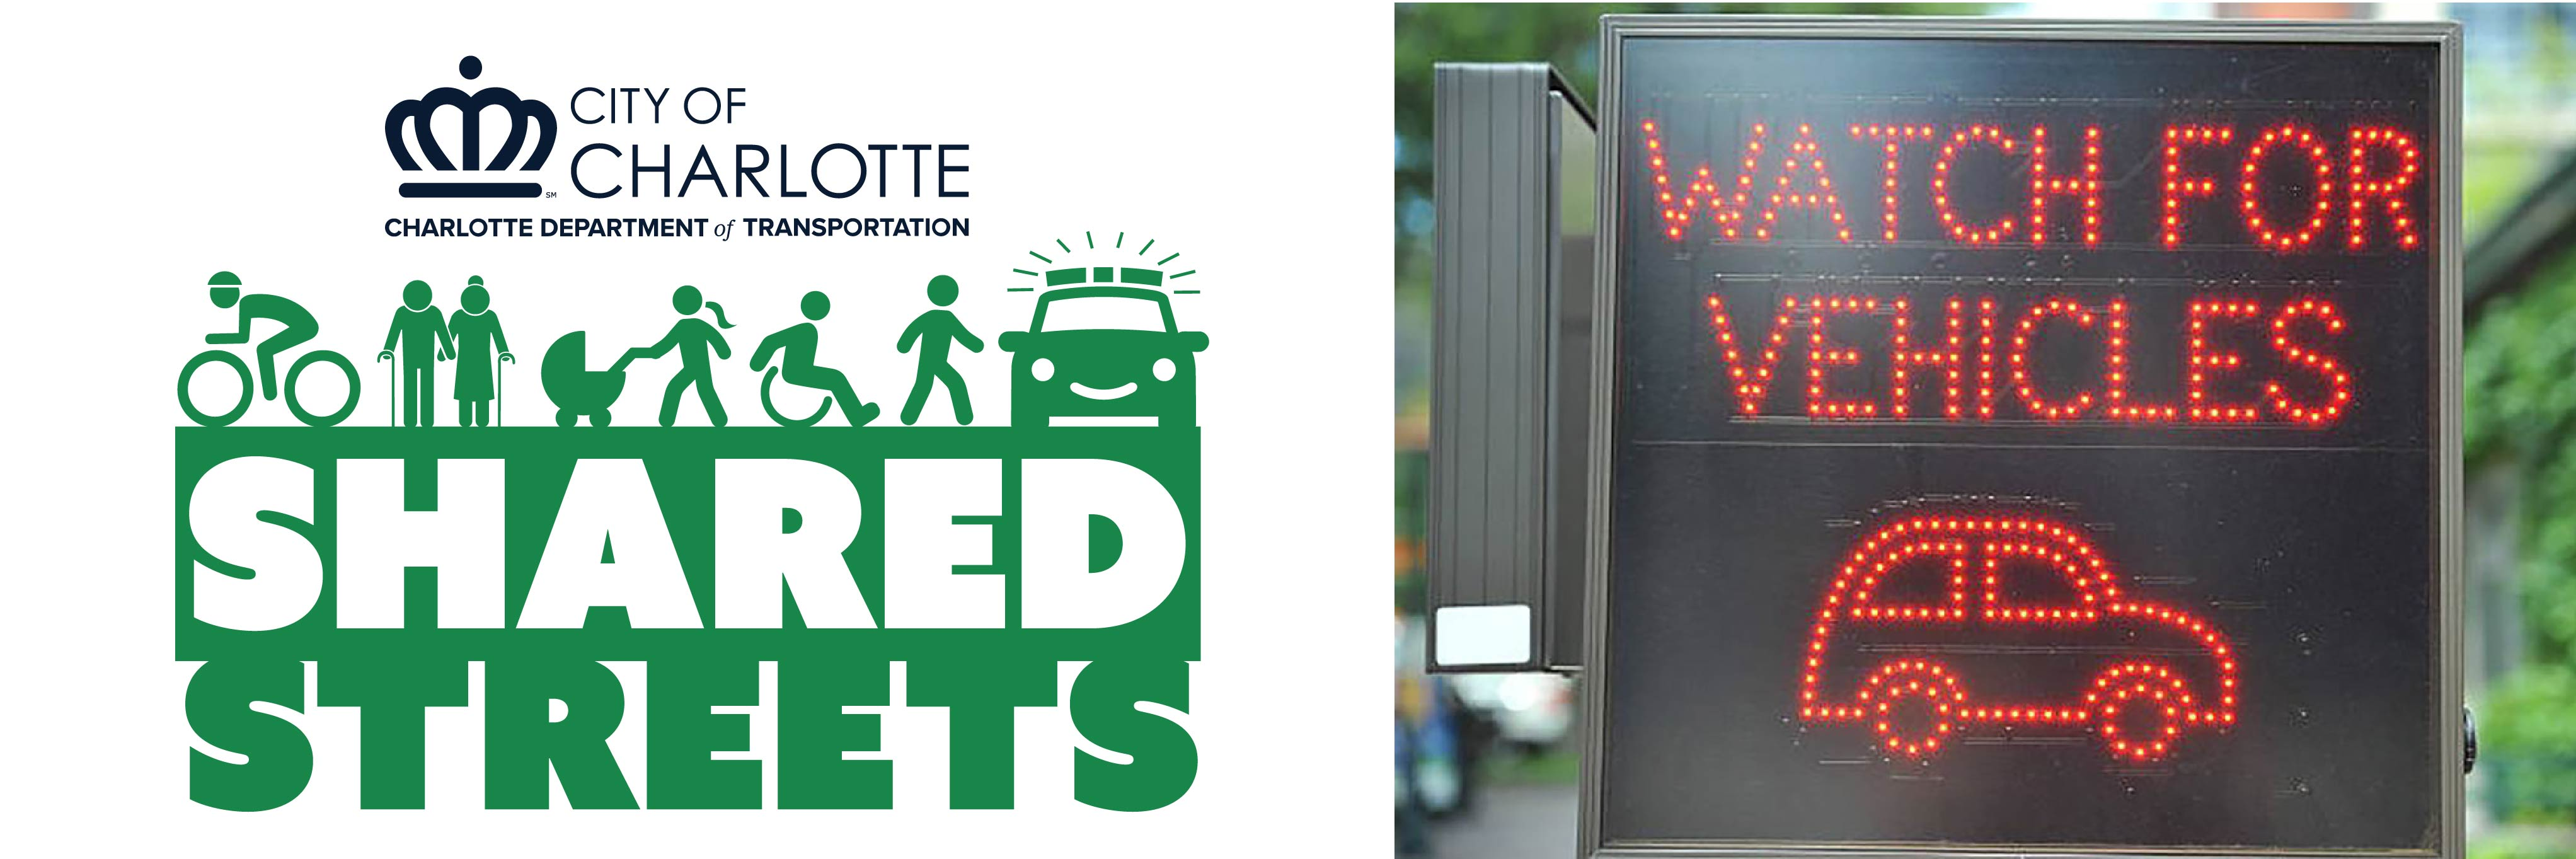 Charlotte Shared Streets Logo